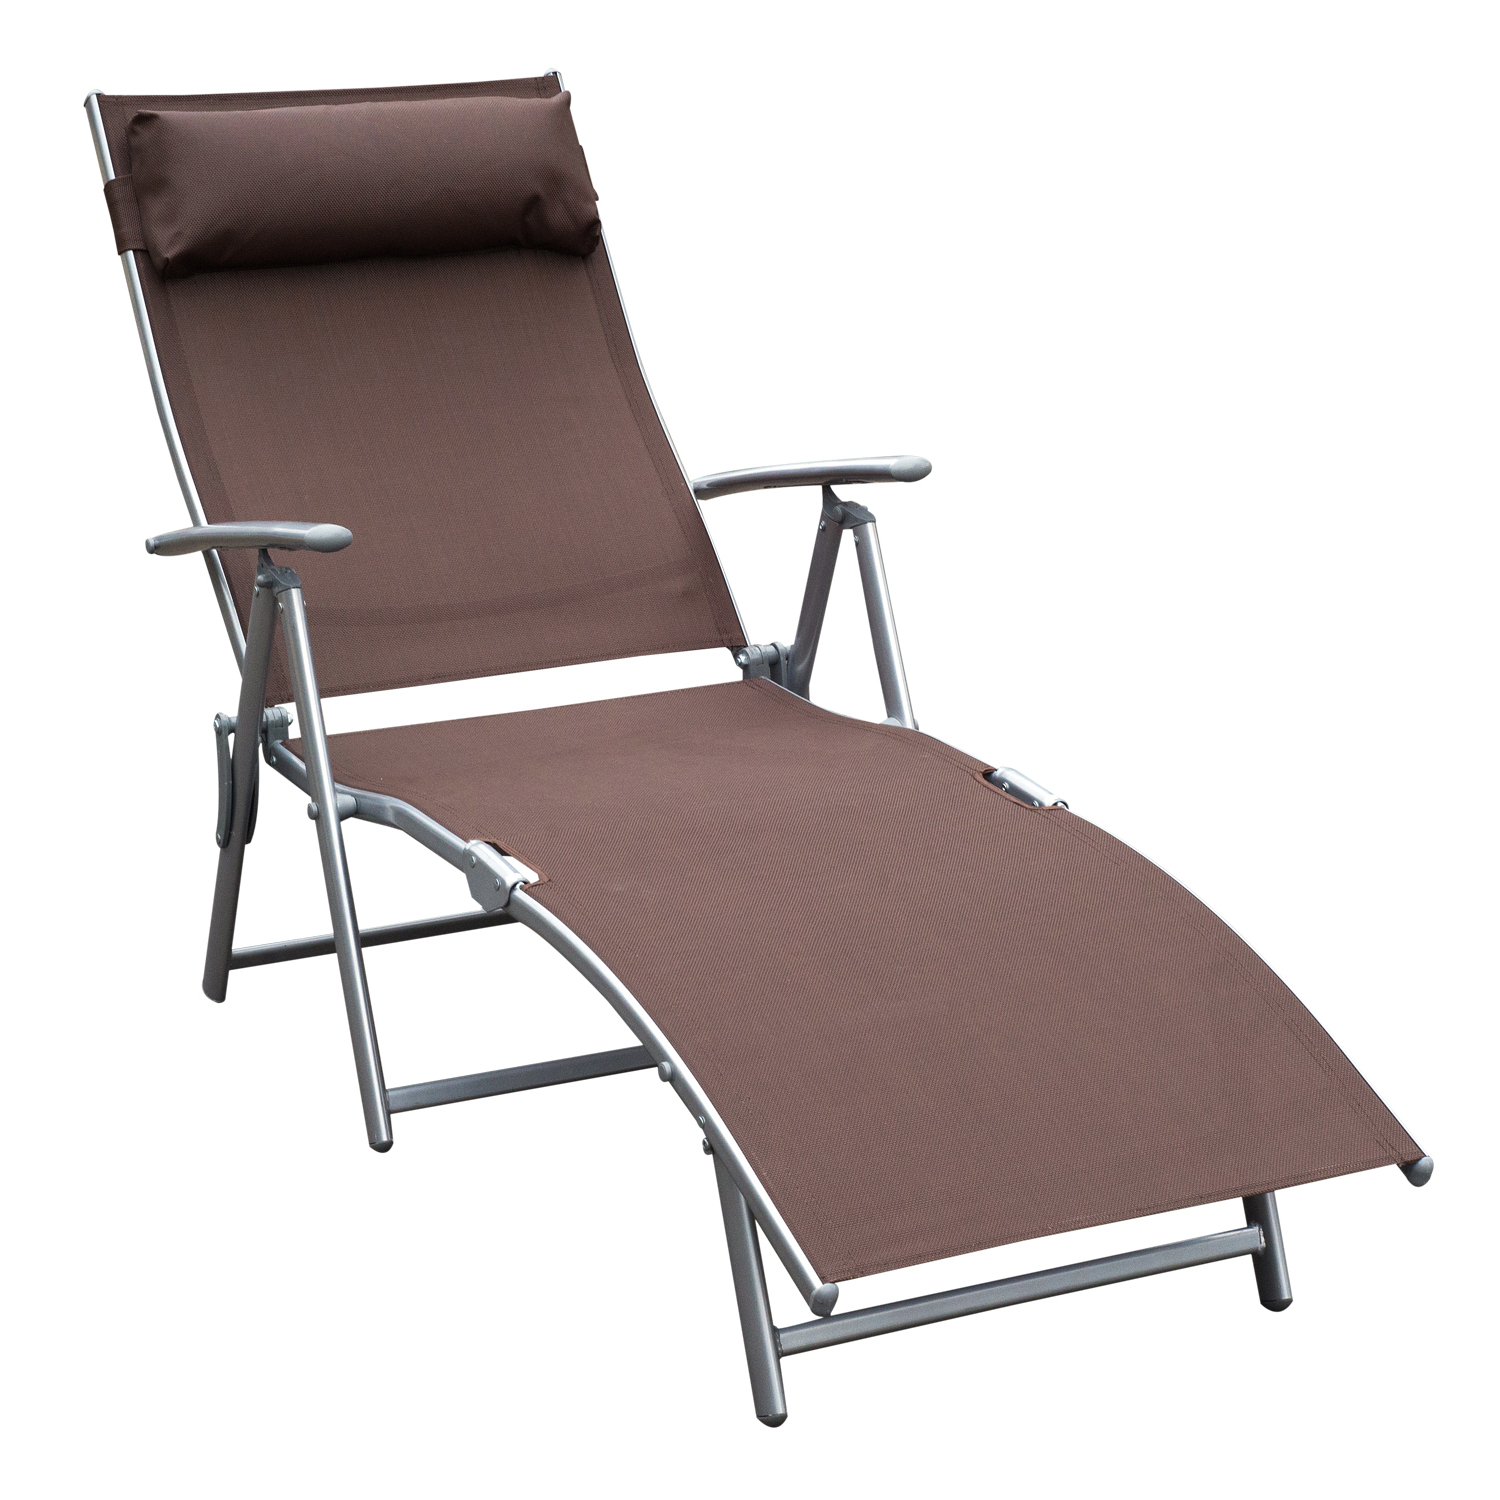 Outsunny Sling Fabric Folding Patio Reclining Outdoor Deck Chaise Lounge Chair With Cushion – Brown For Most Current Fabric Reclining Outdoor Chaise Lounges (View 4 of 25)